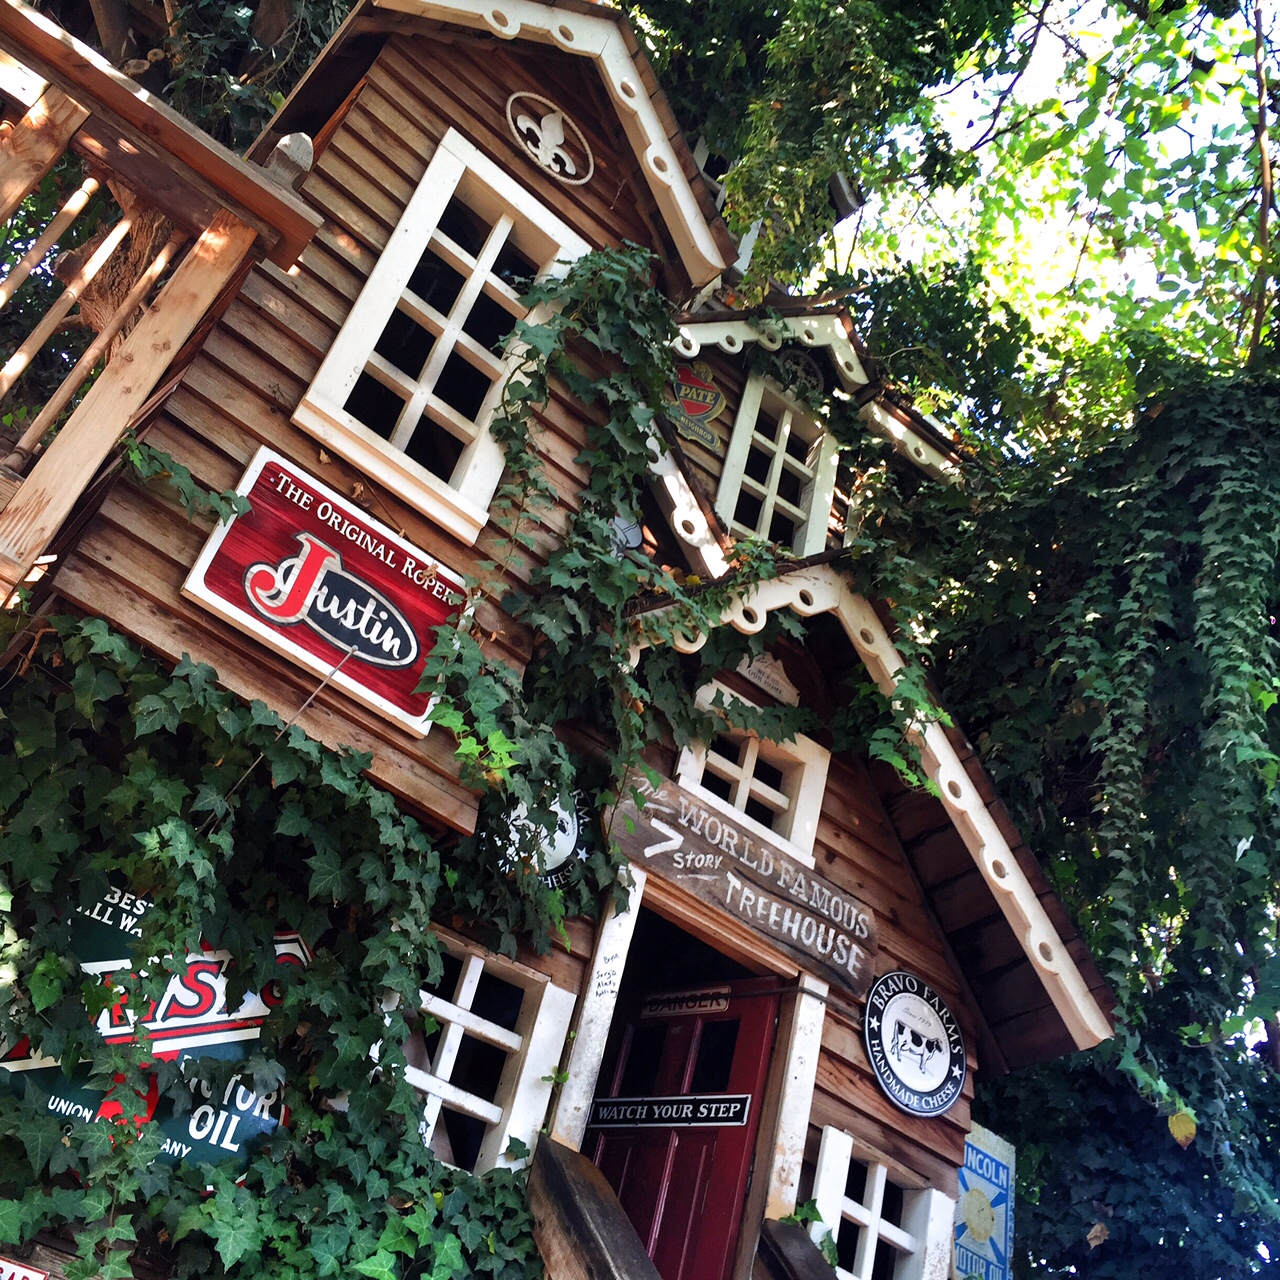 the worlds largest treehouse at bravo farms oc mom blog - Biggest Treehouse In The World 2016